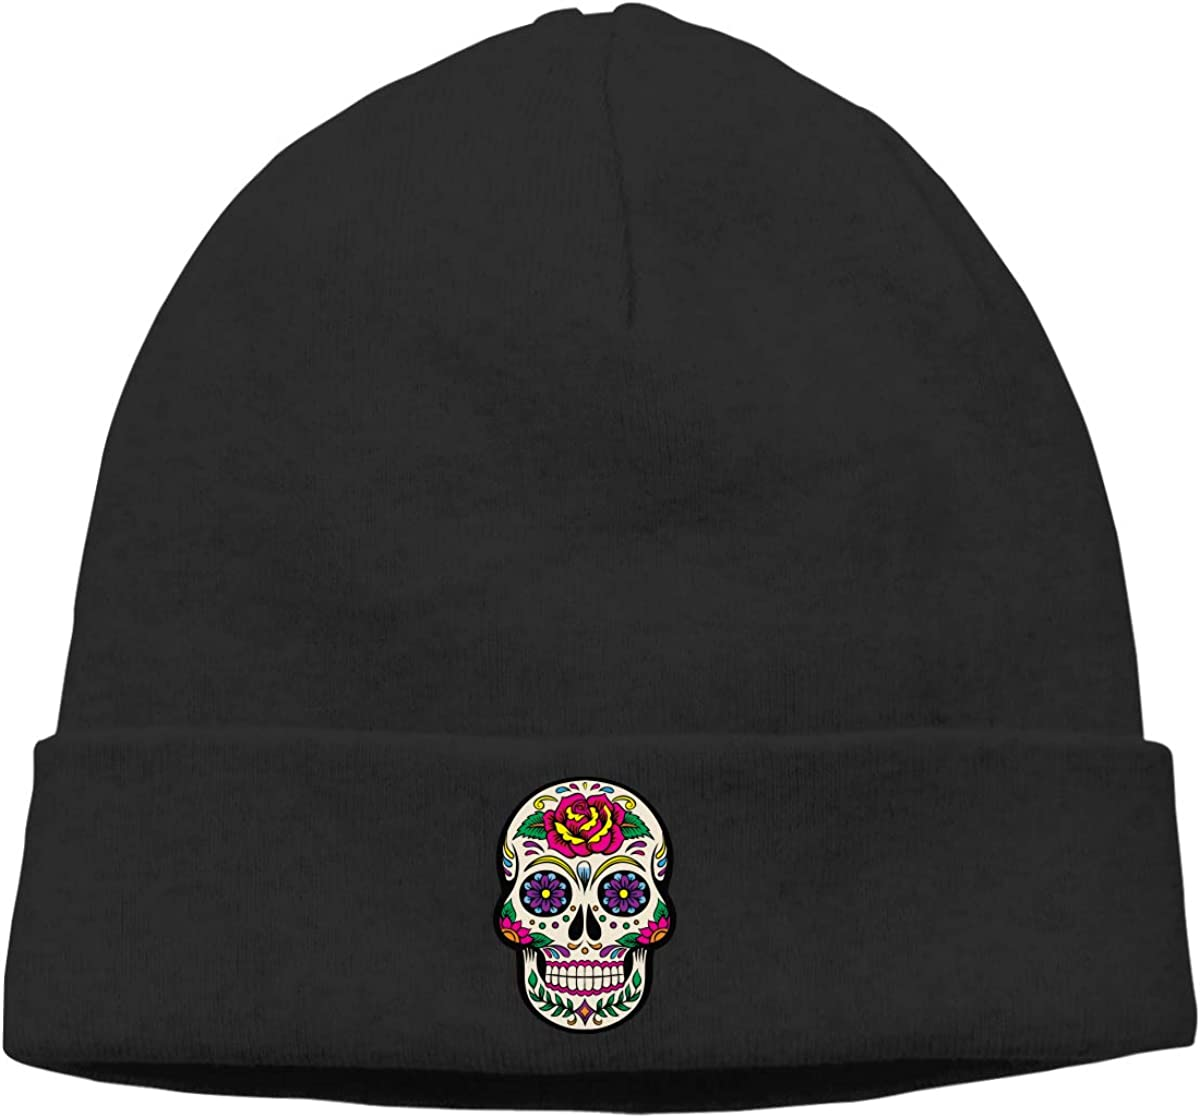 Giant Sugar Skulls Beanie Hat Daily Knit Cap for Mens and Womens